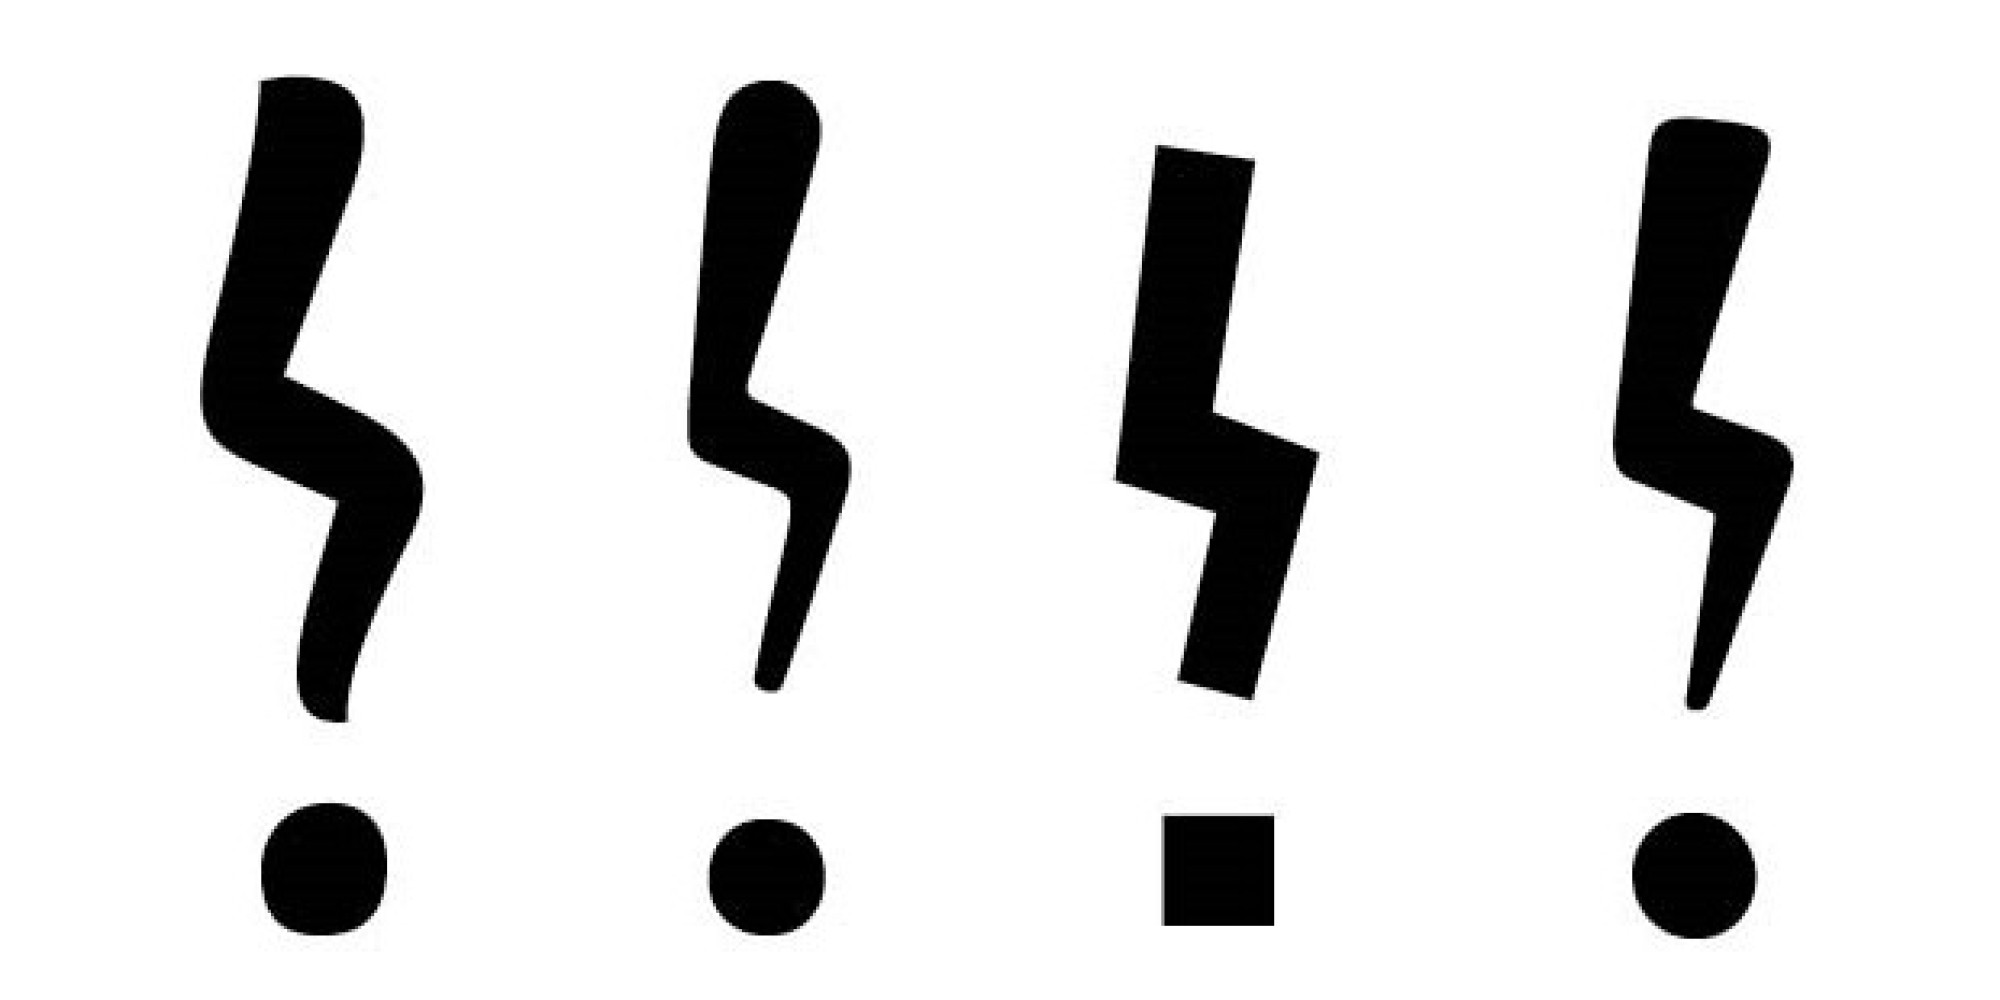 8 Punctuation Marks That Are No Longer Used